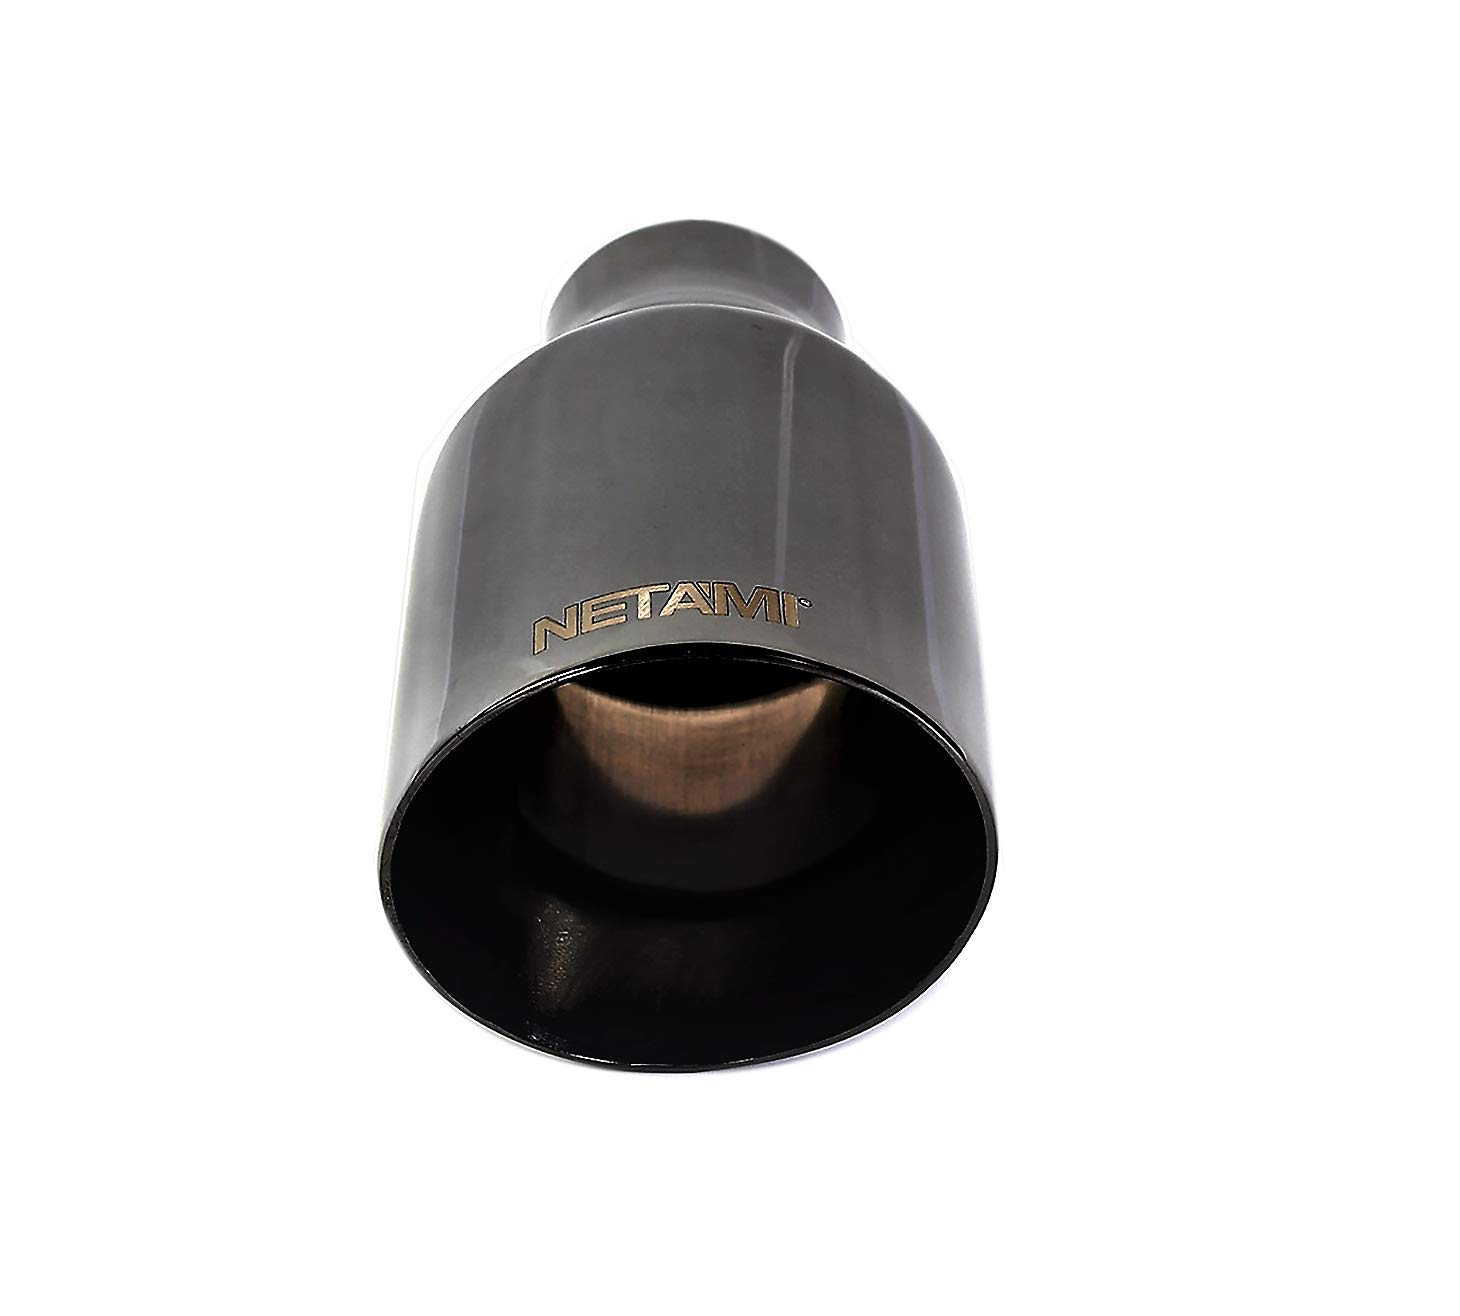 2.25 Inlet//3.5 Outlet NETAMI NT-2375 DOUBLE WALL BLACK CHROME STAINLESS STEEL EXHAUST TIP